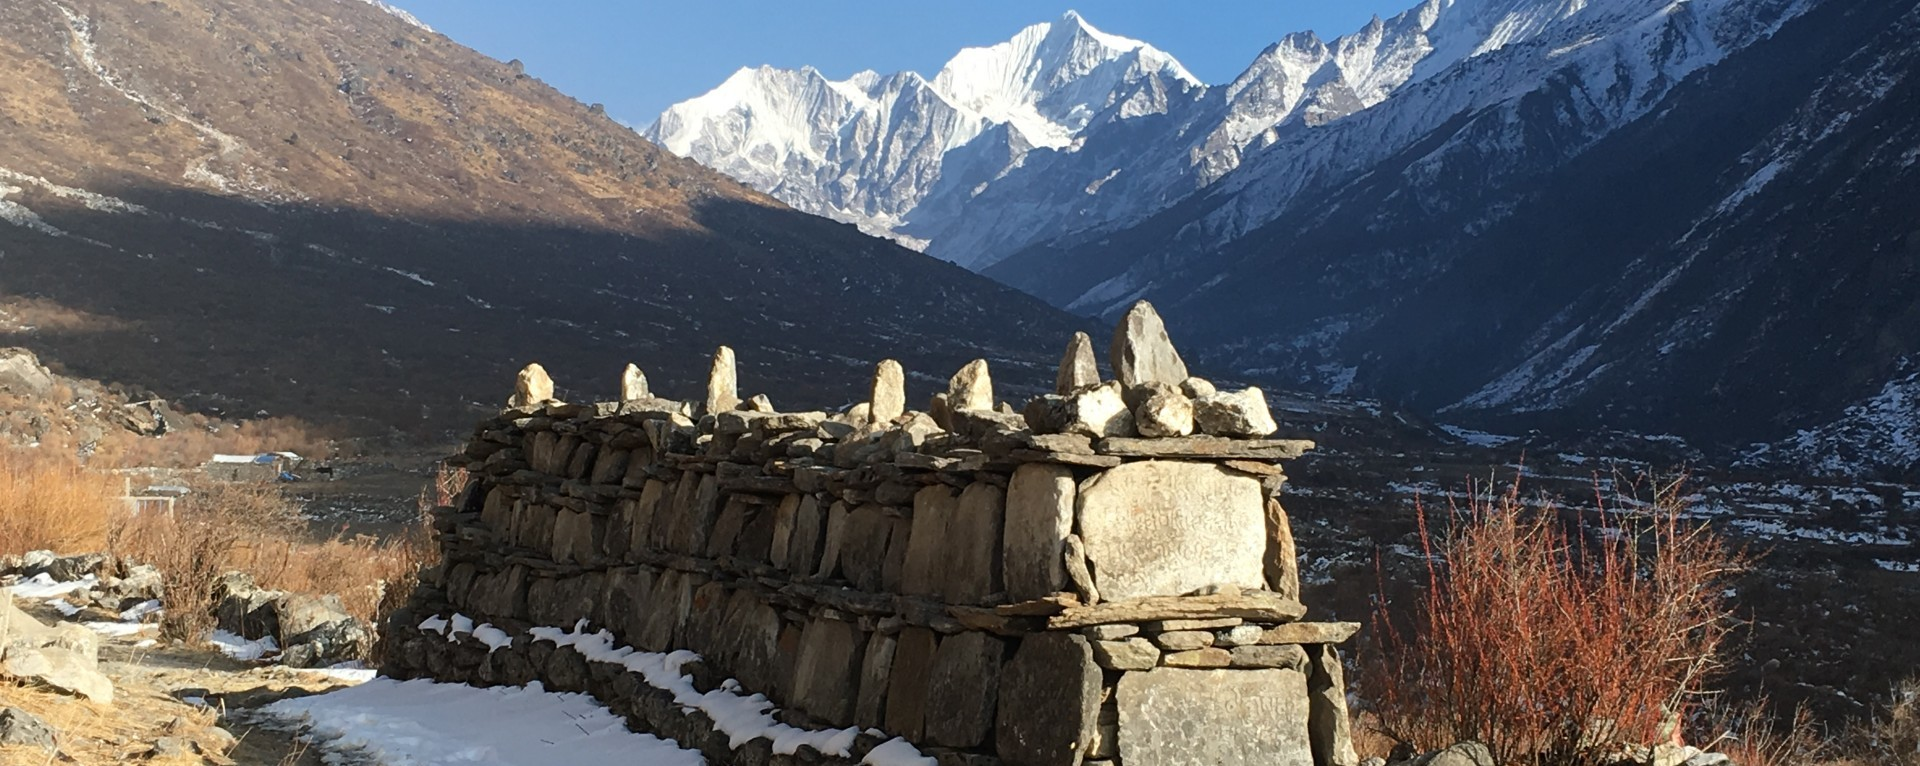 Mane walls of Langtang valley, Nepal